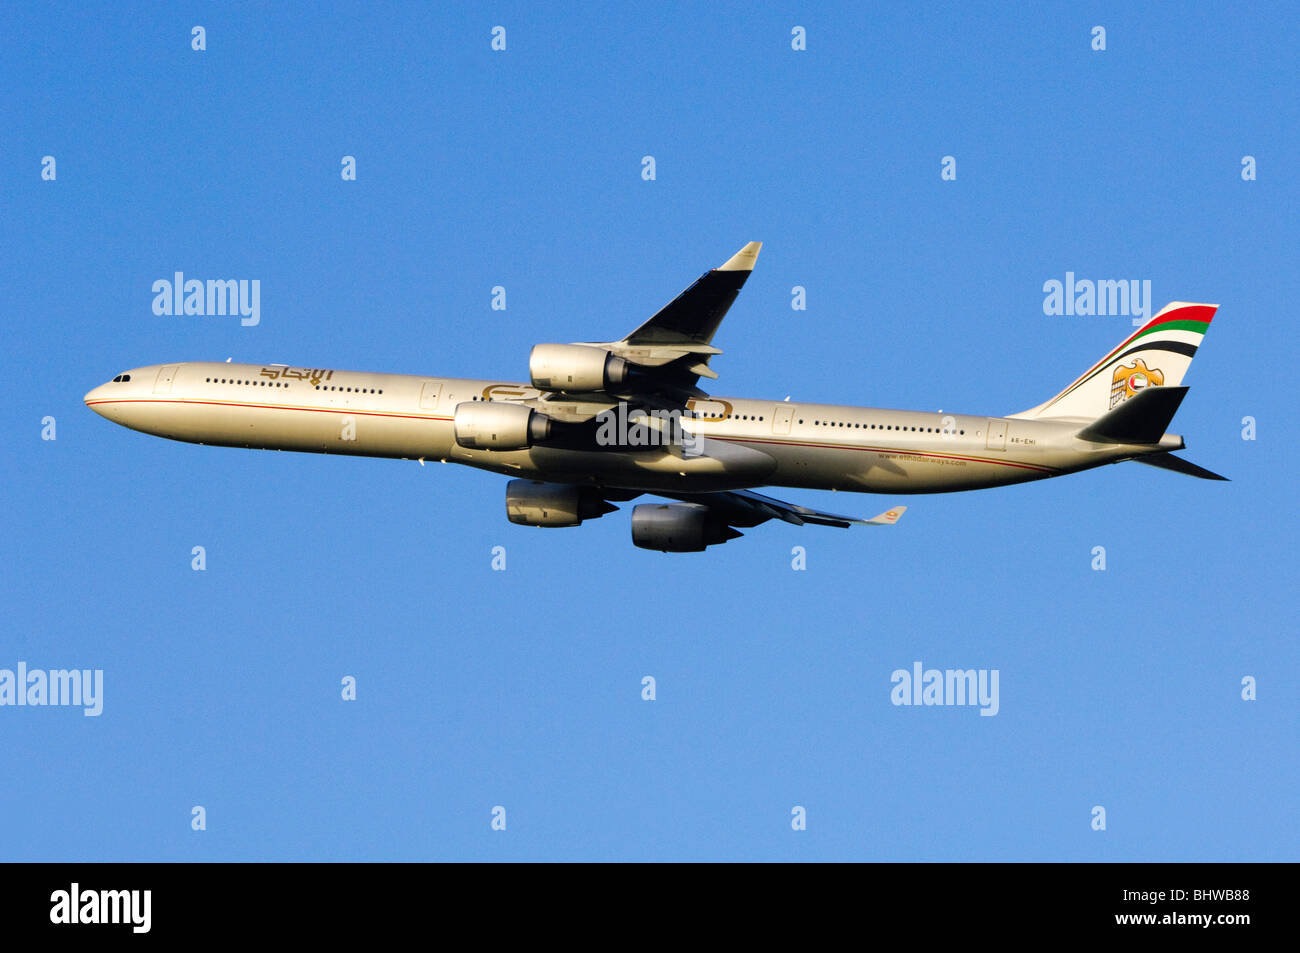 Airbus A340 operated by Etihad Airways climbing out after take off from London Heathrow Airport Stock Photo